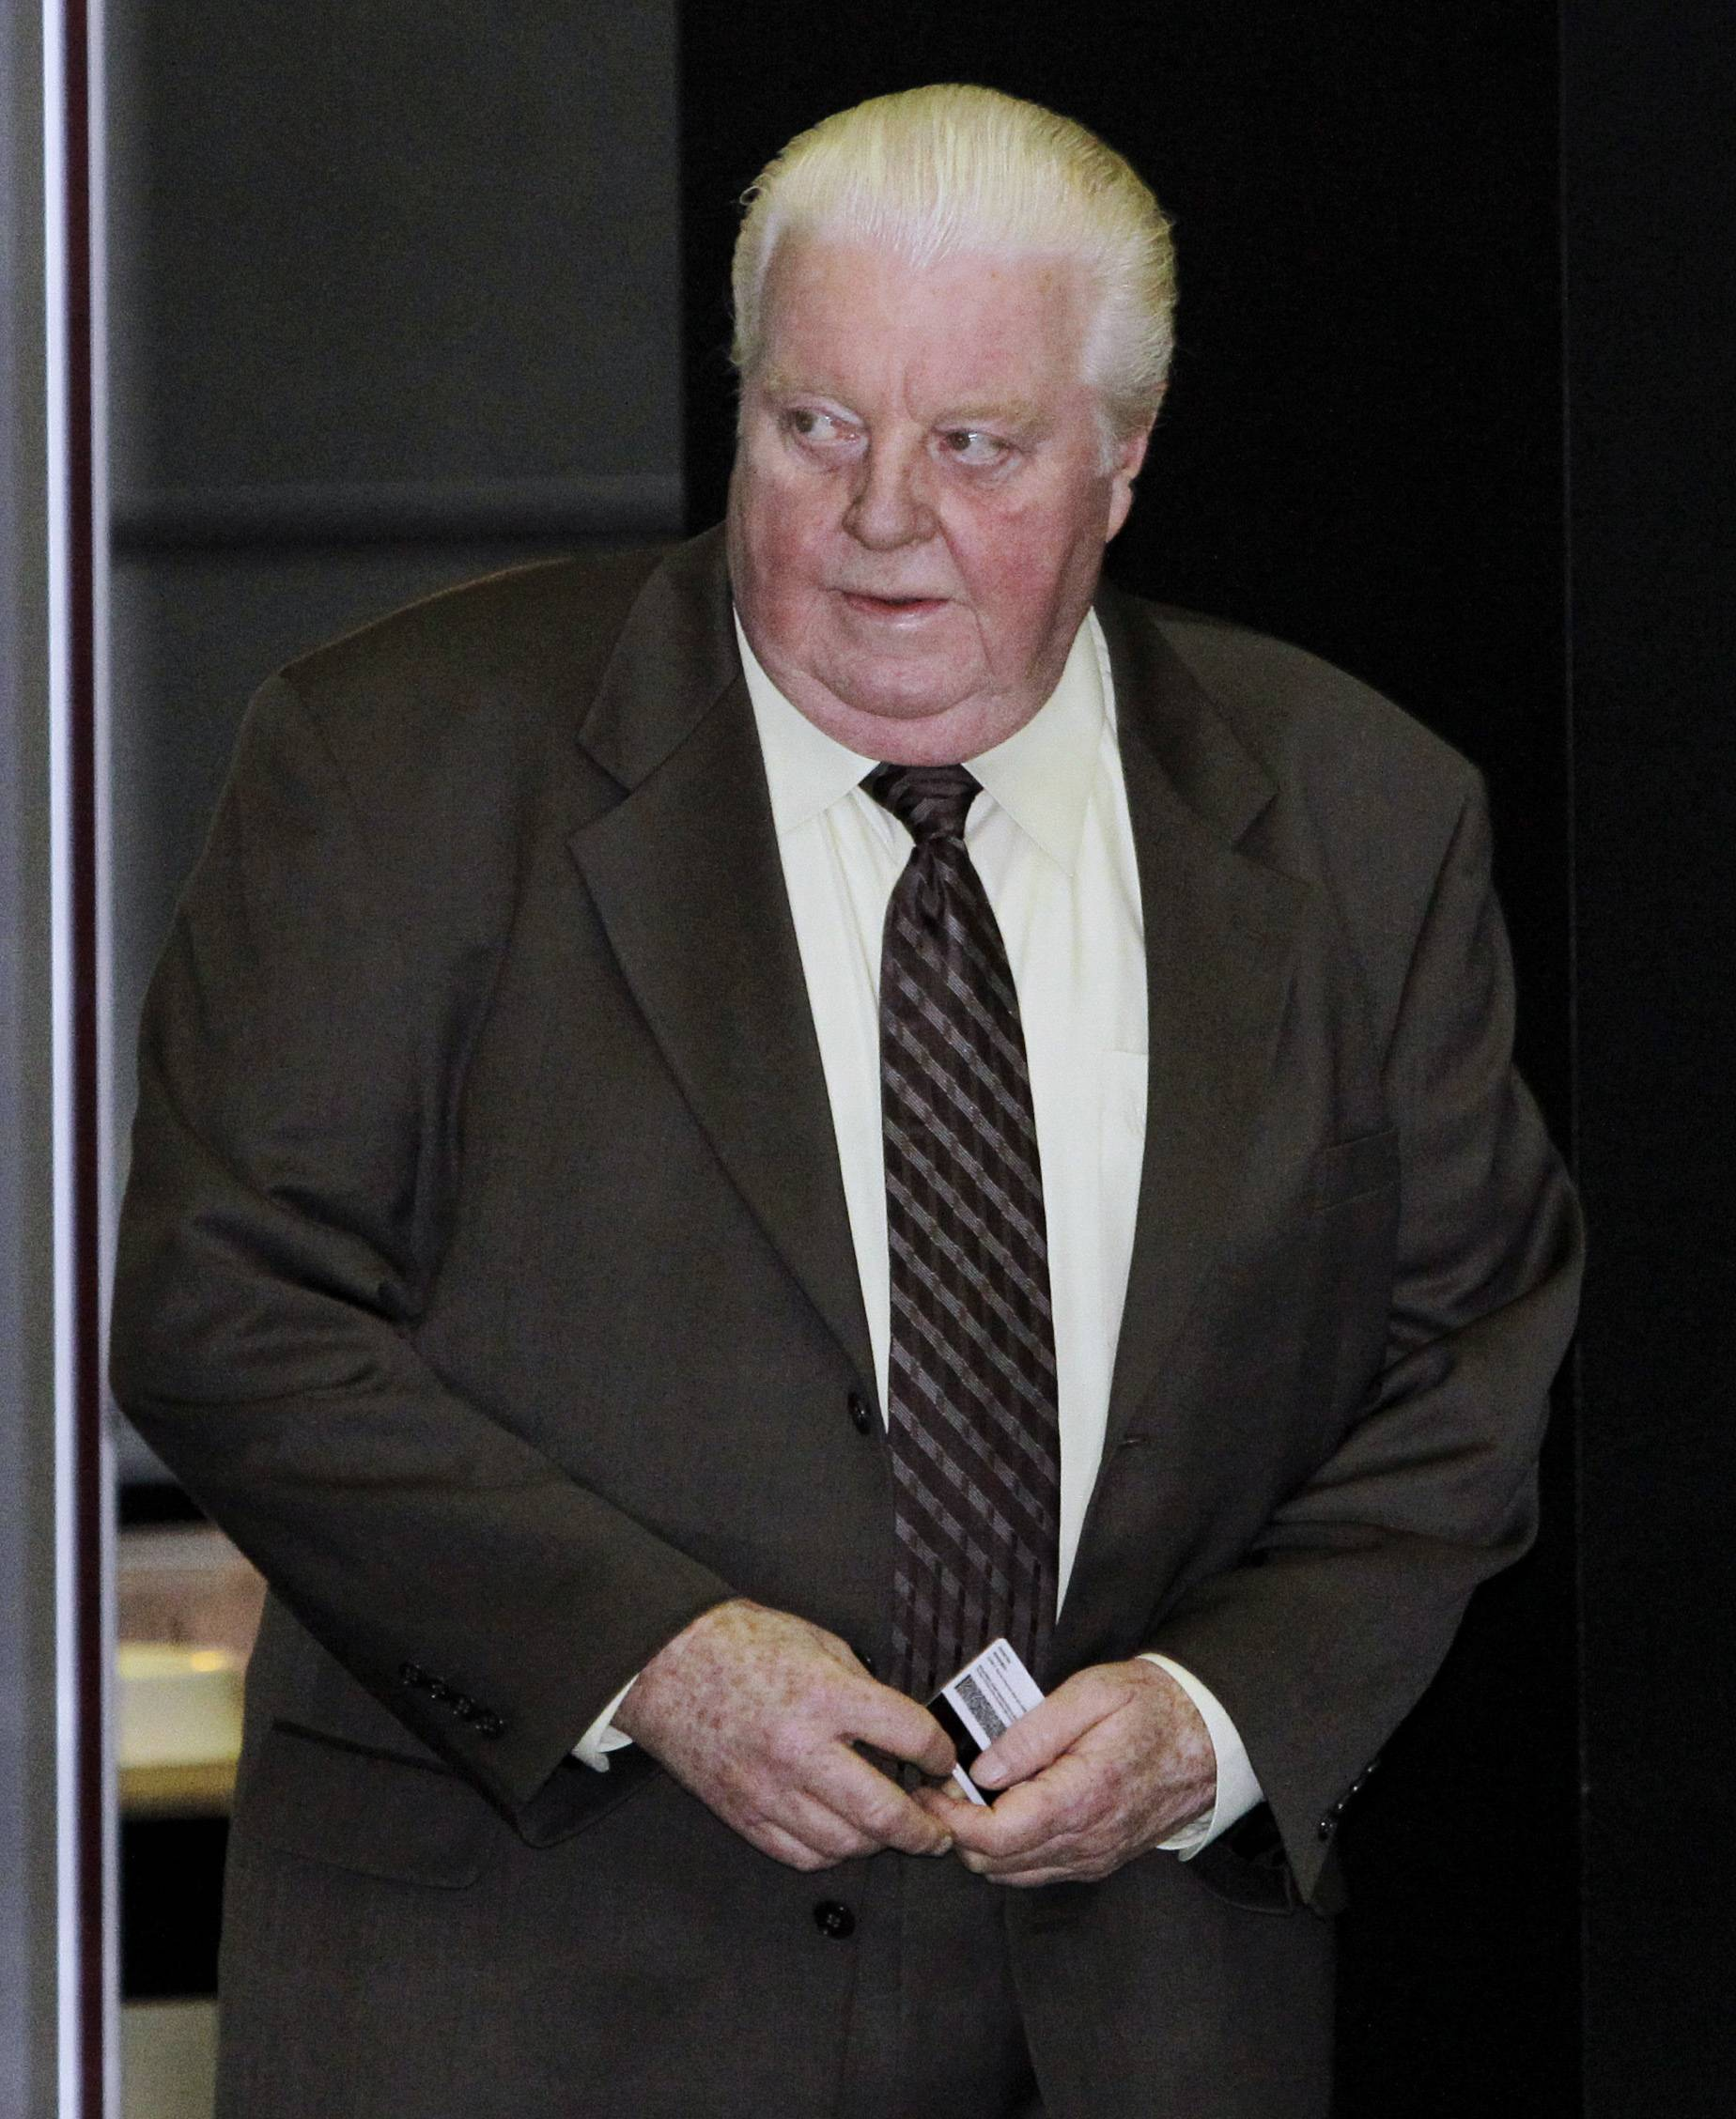 Chicago police Cmdr. Jon Burge is now in prison for lying about the torture of suspects decades ago.